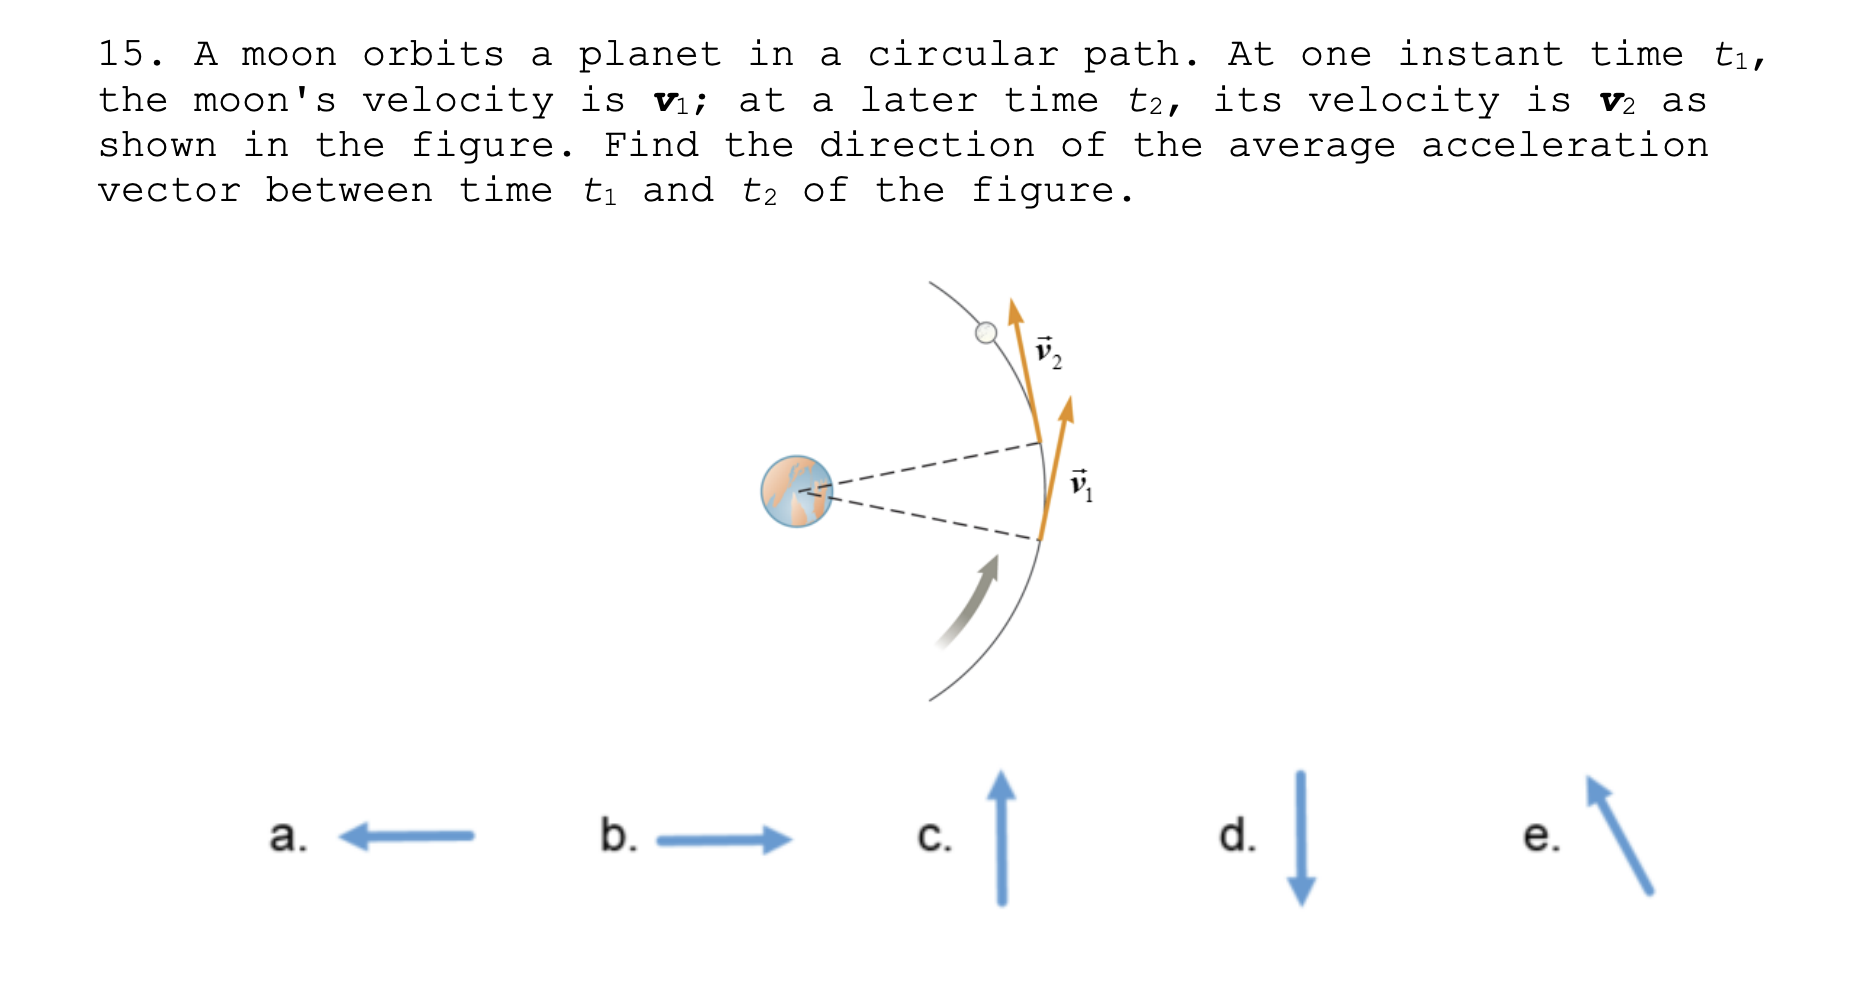 15. A moon orbits a planet in a circular path. At one instant time ti, the moon's velocity is v; at a later time t2, its velocity is v2 as shown in the figure. Find the direction of the average acceleration vector between time ti and t2 of the figure. b. – d. C. a. e.